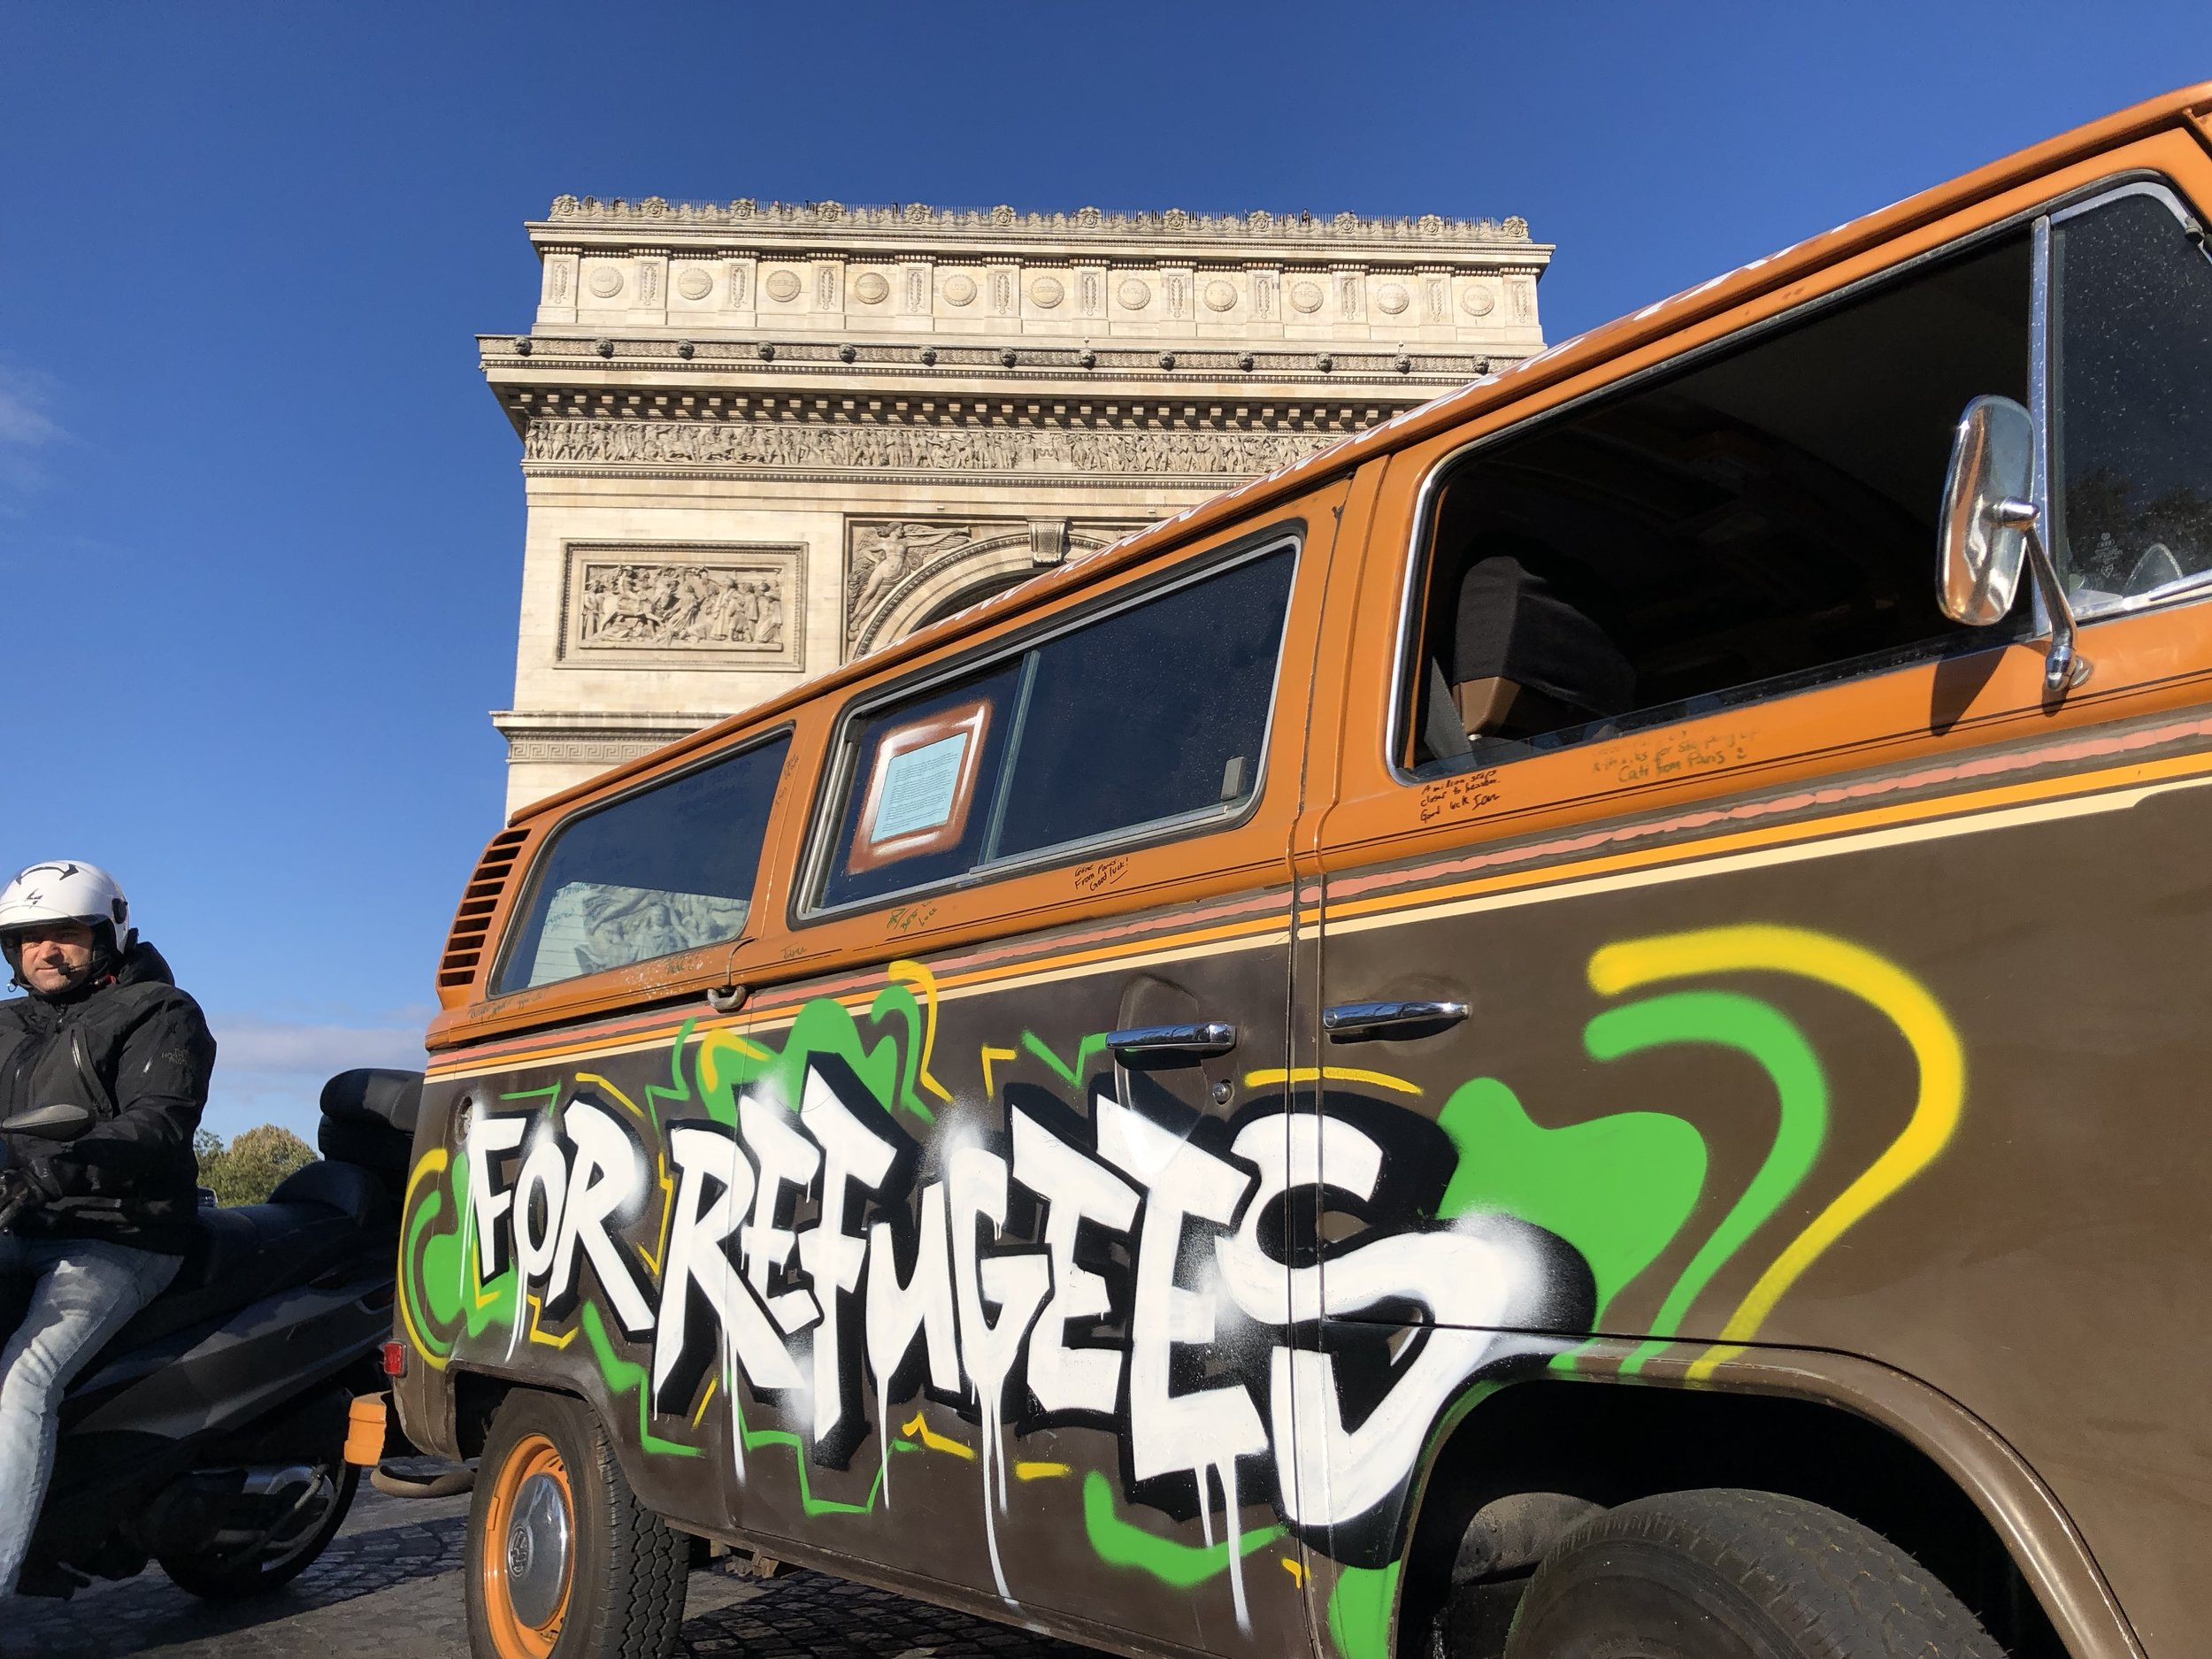 VW Bus outside arc de triomphe.JPG